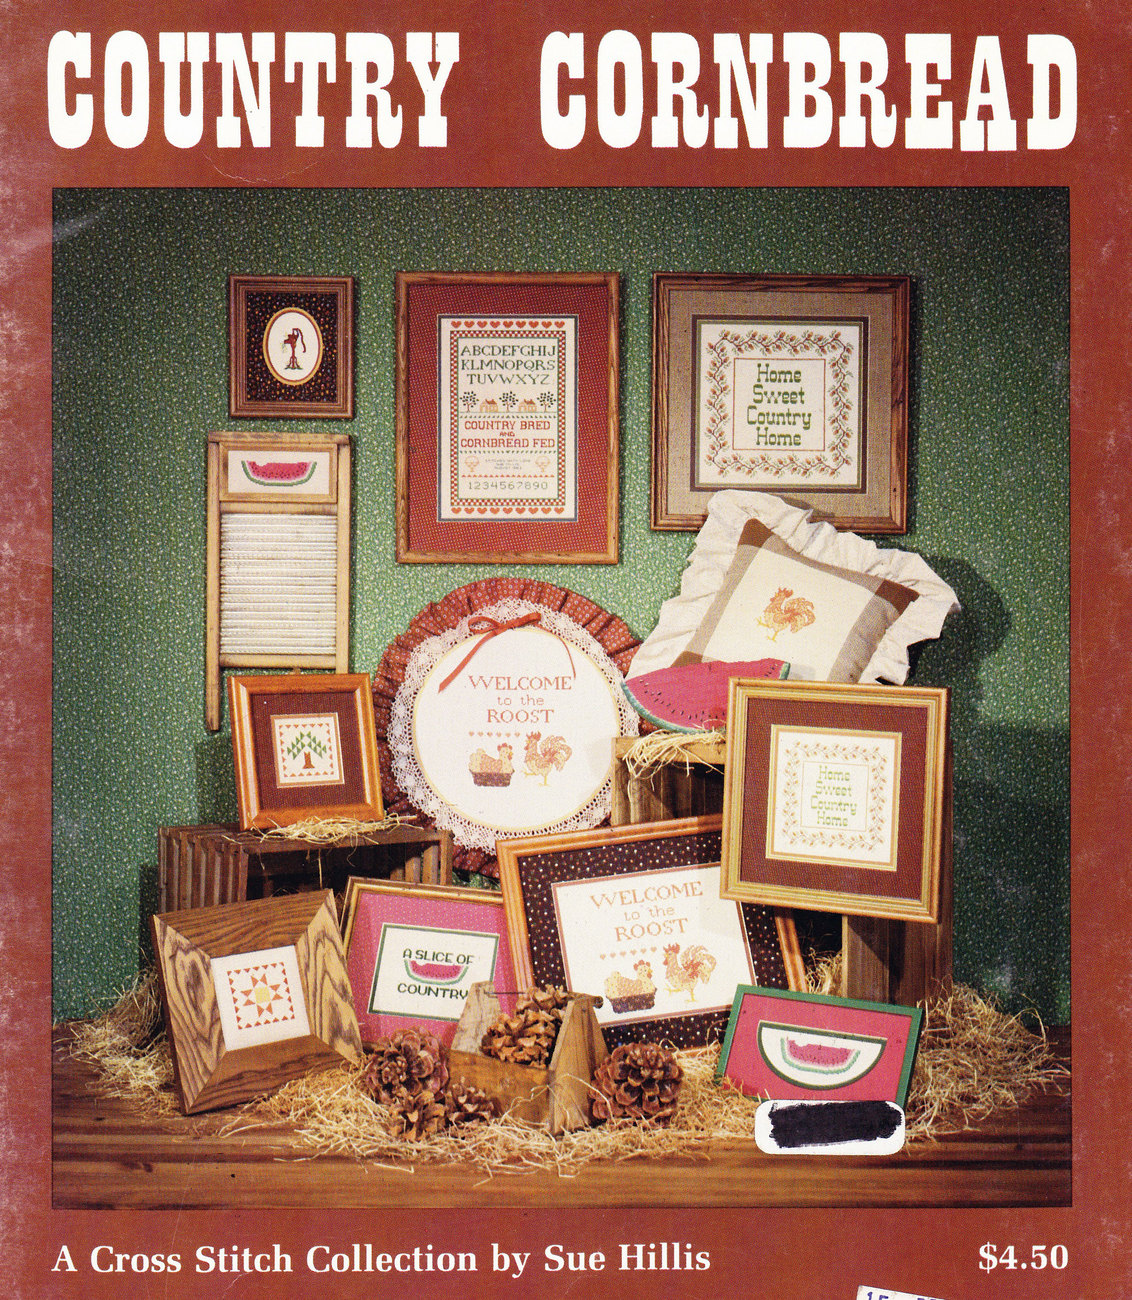 CROSS STITCH COUNTRY CORNBREAD BY SUE HILLIS